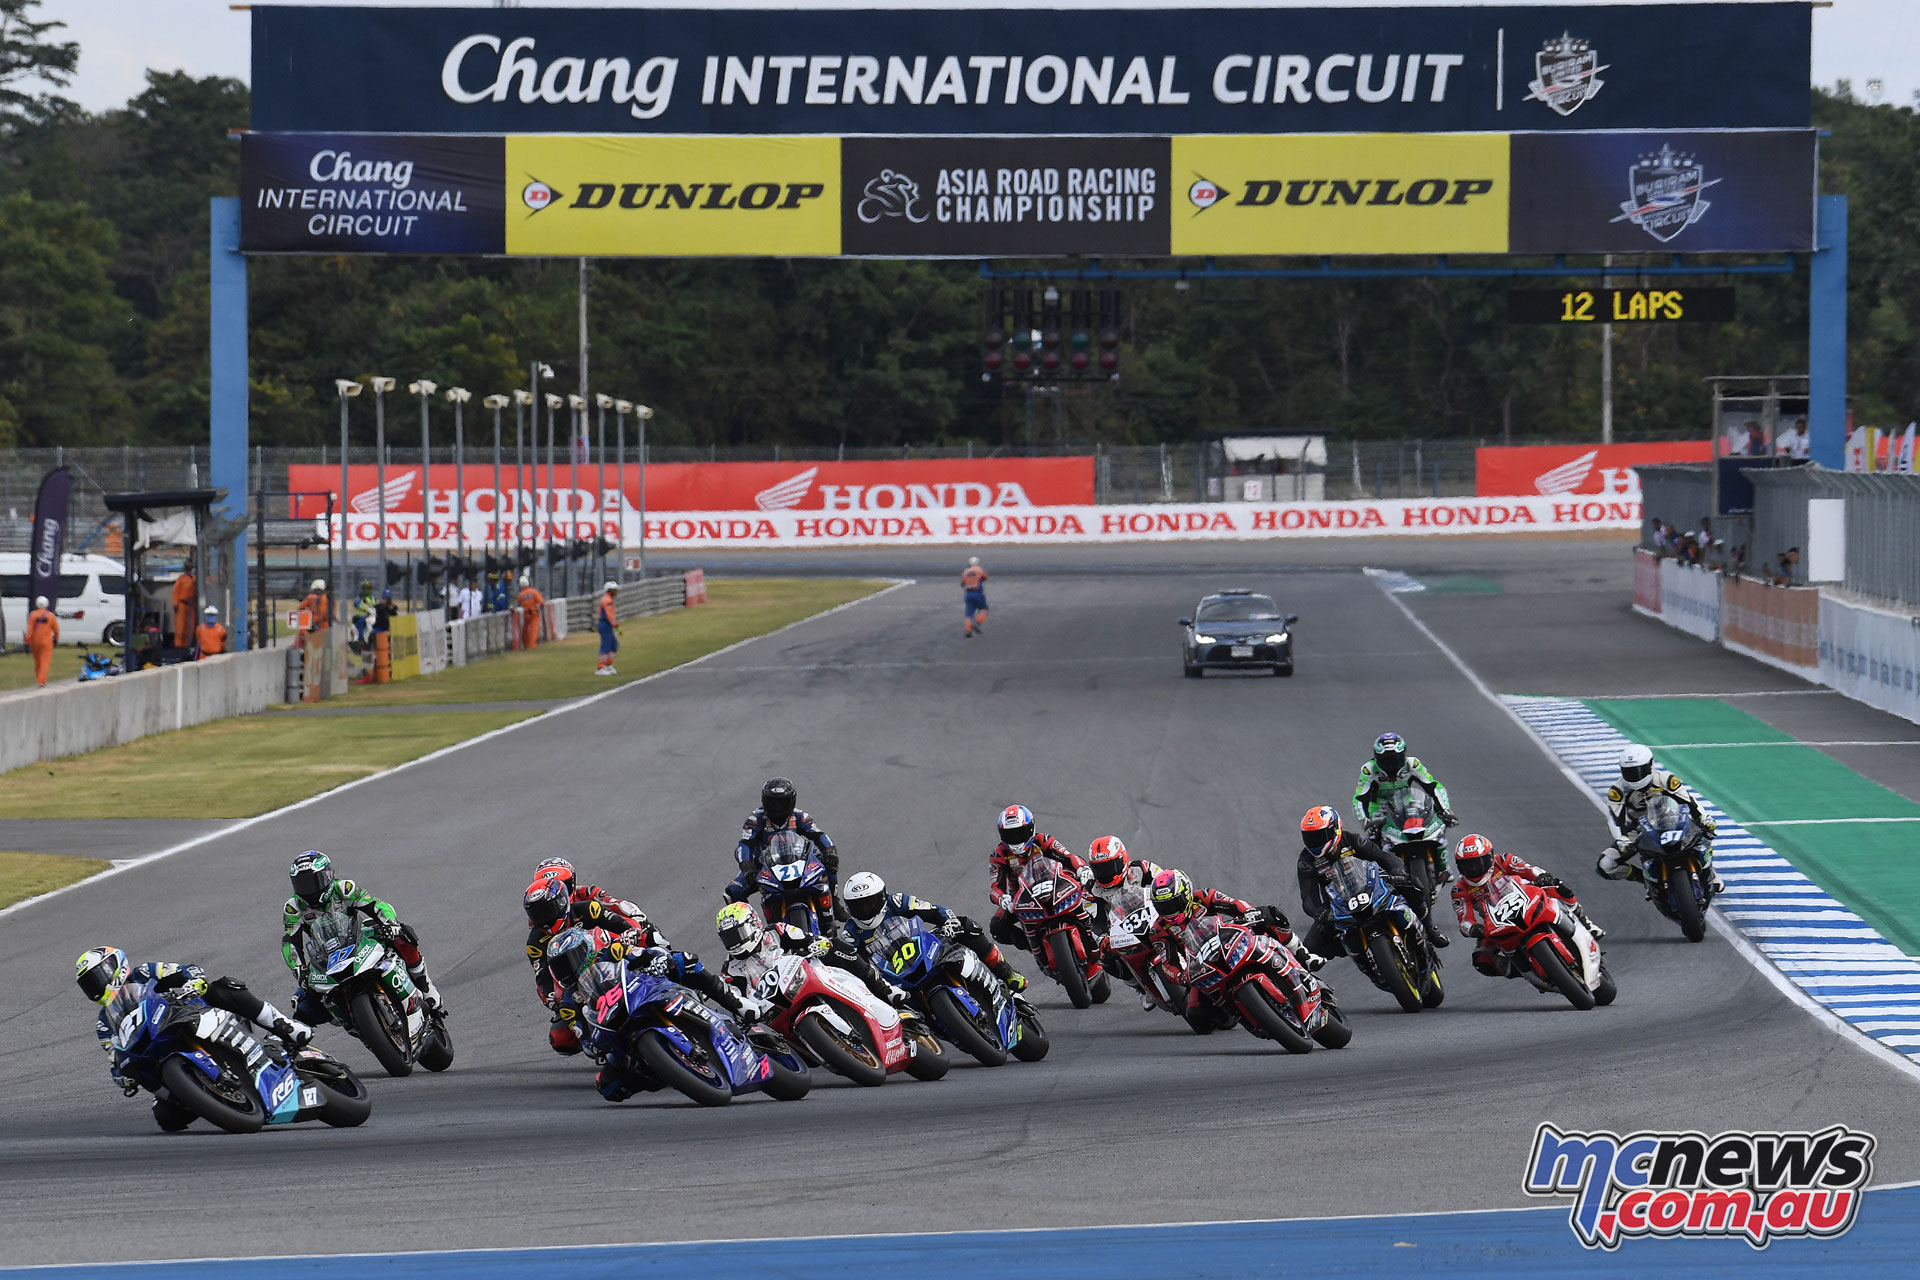 ARRC Rnd Thailand Chang SS Start